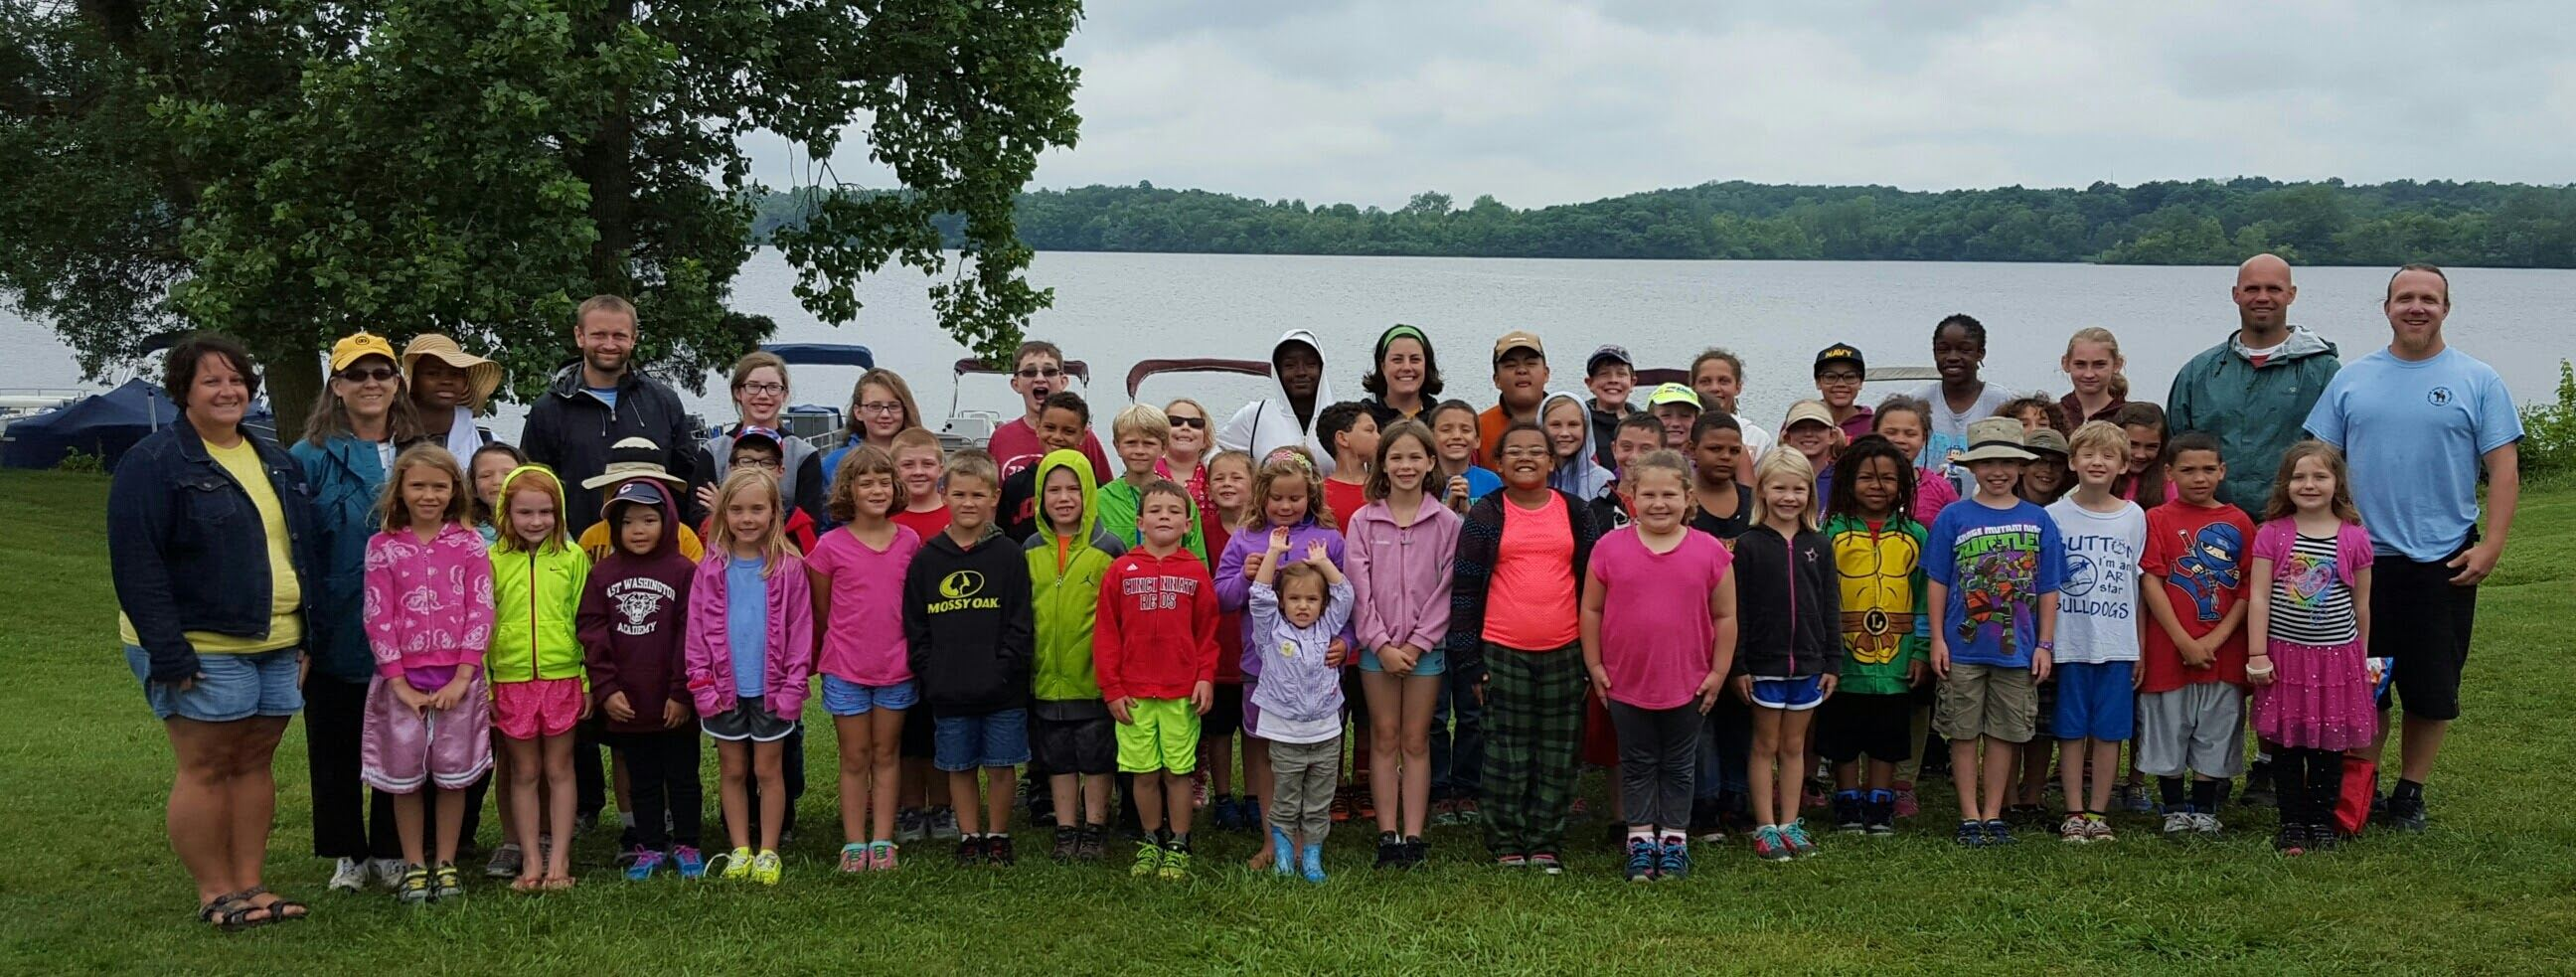 Camp Prairie Creek 2015 Group Photo